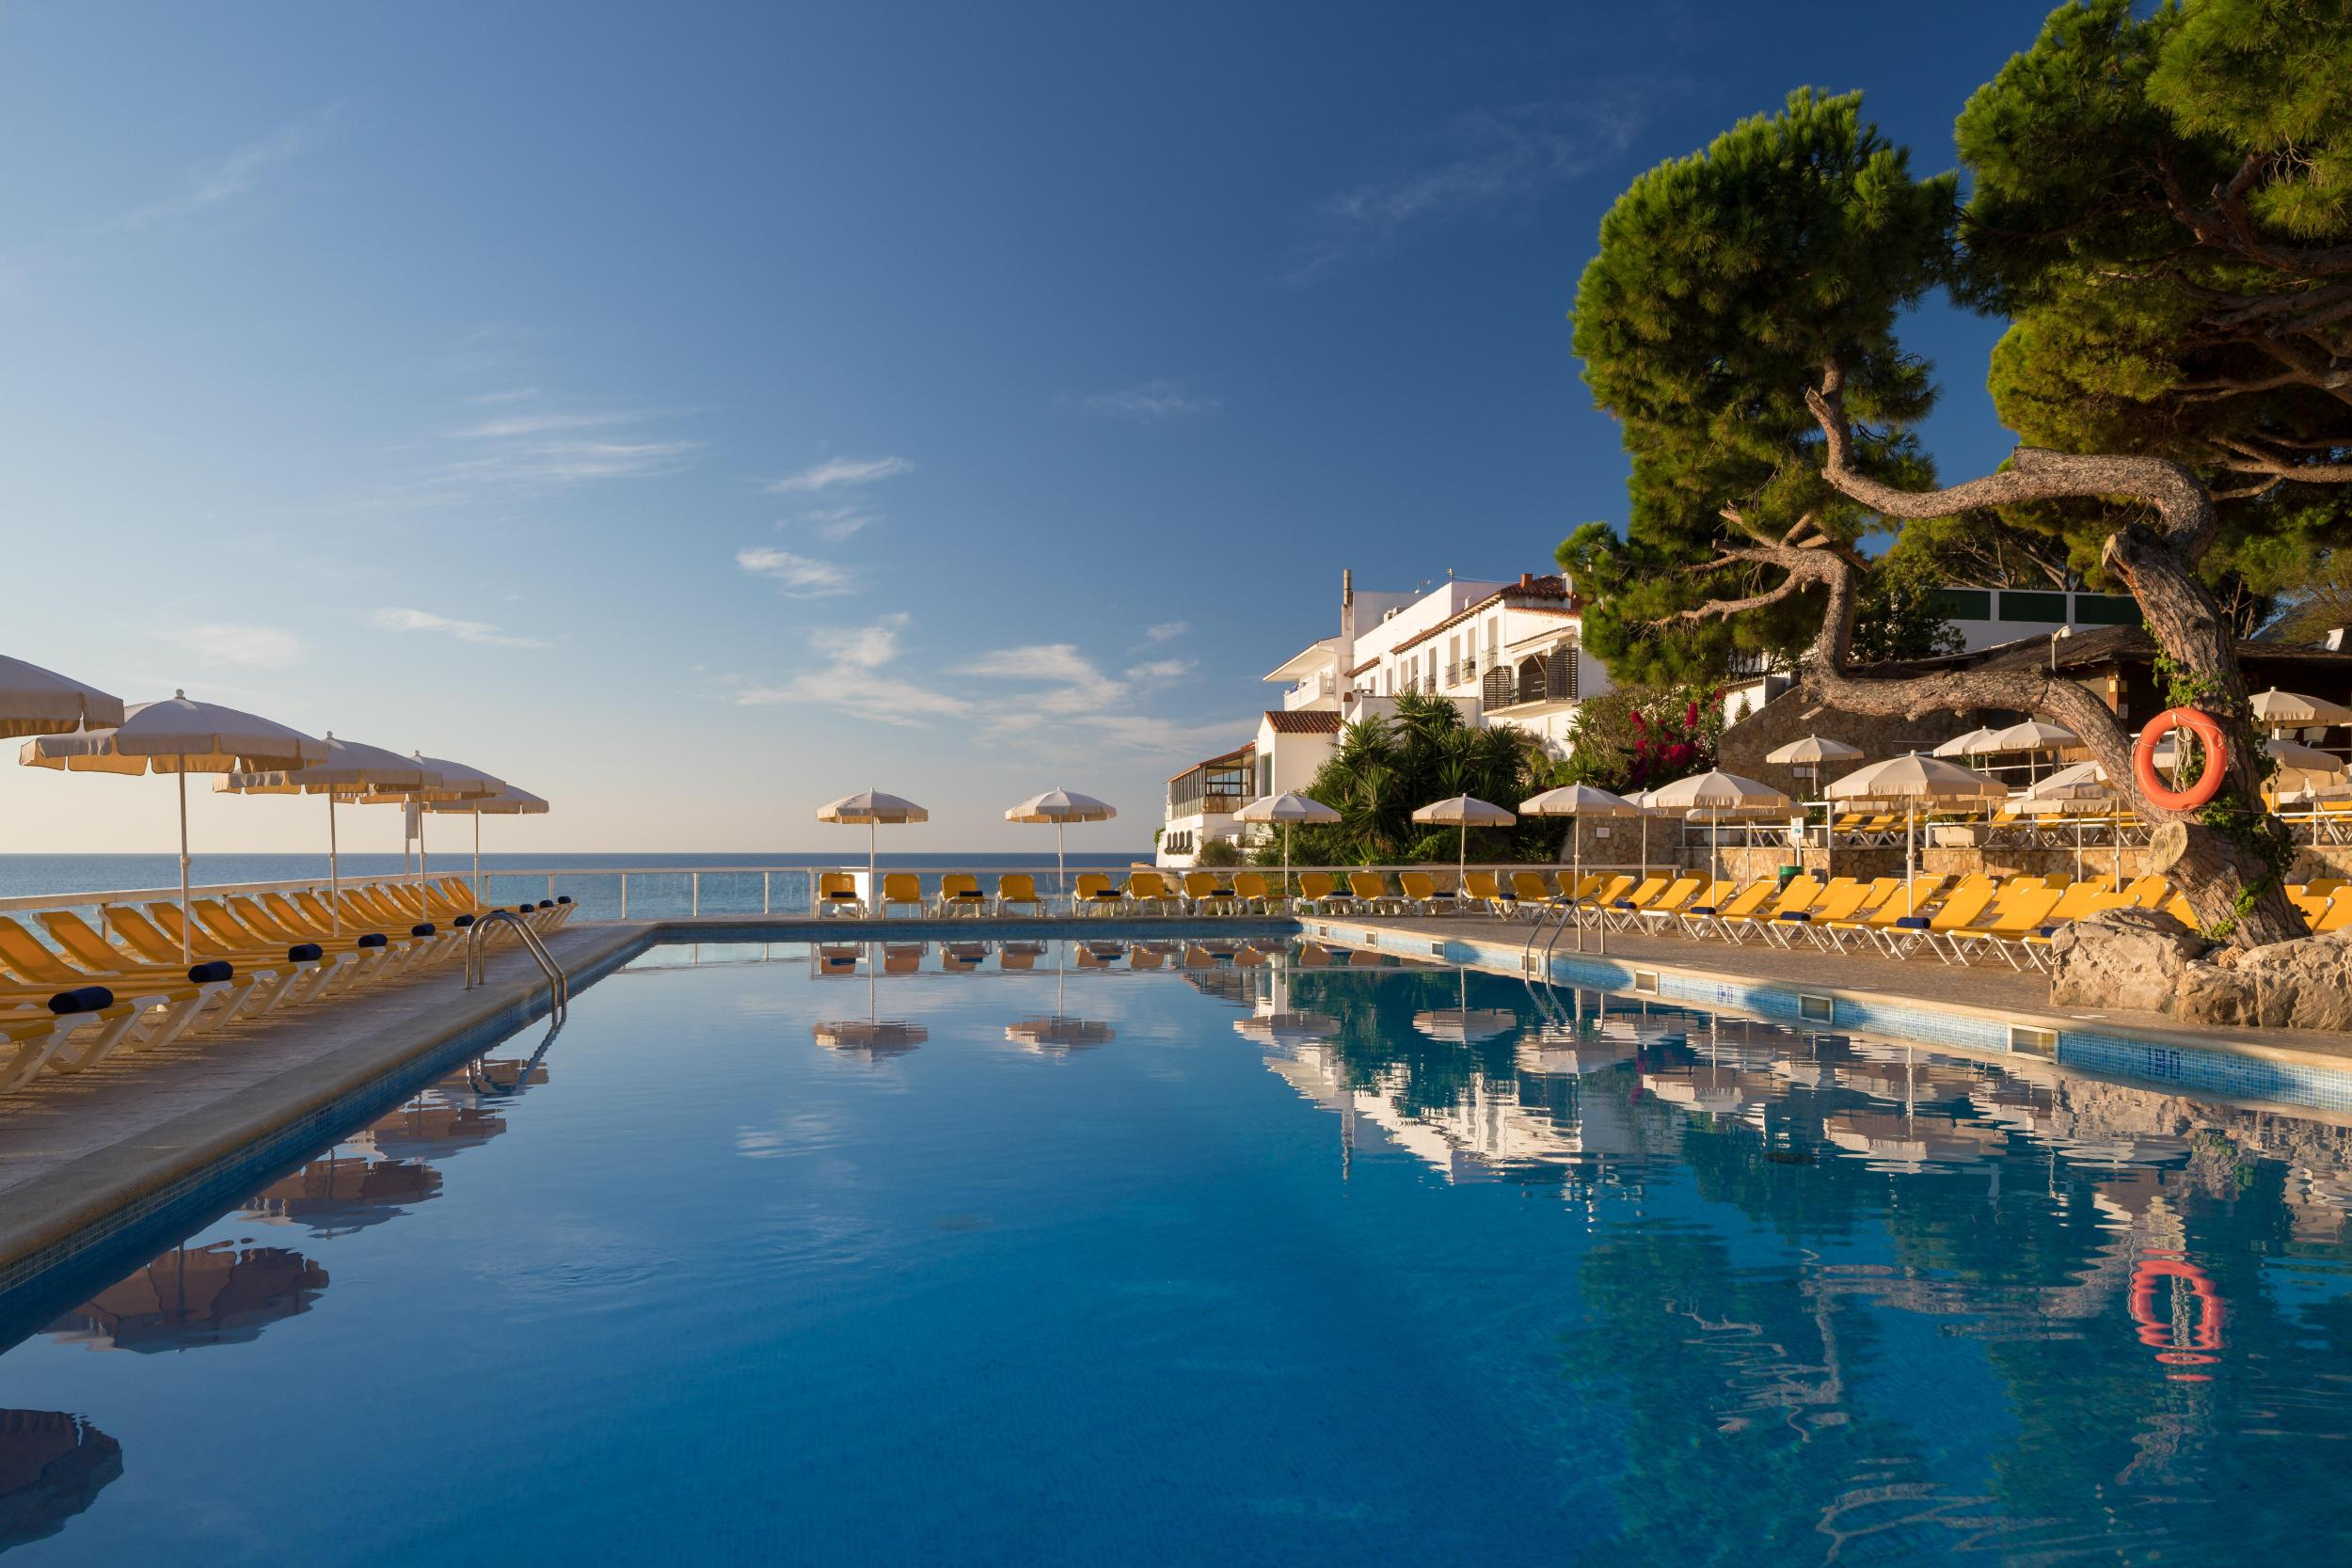 H.TOP Caleta Palace Hotel in Playa de Aro, Costa Brava, Spain